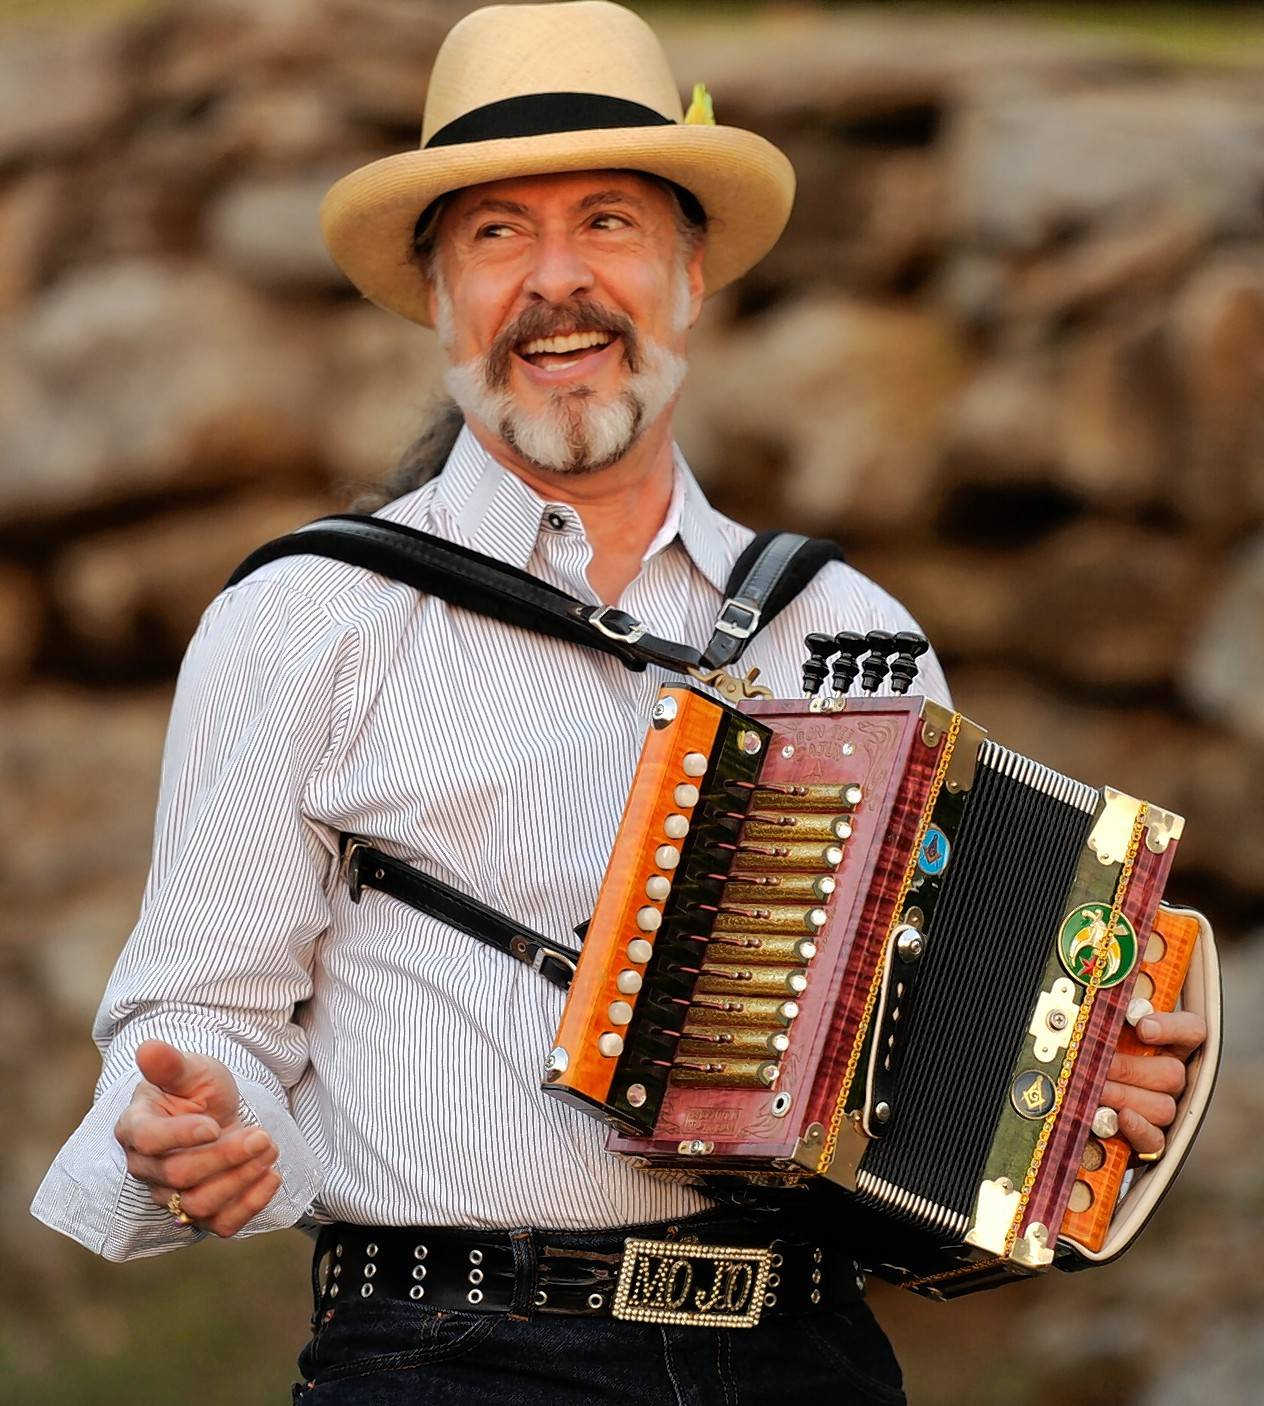 Mojo and the Boyou Gypsies play zydeco and cajun rock at the Arcada Theatre's Mardi Gras celebration Friday, Feb. 19.